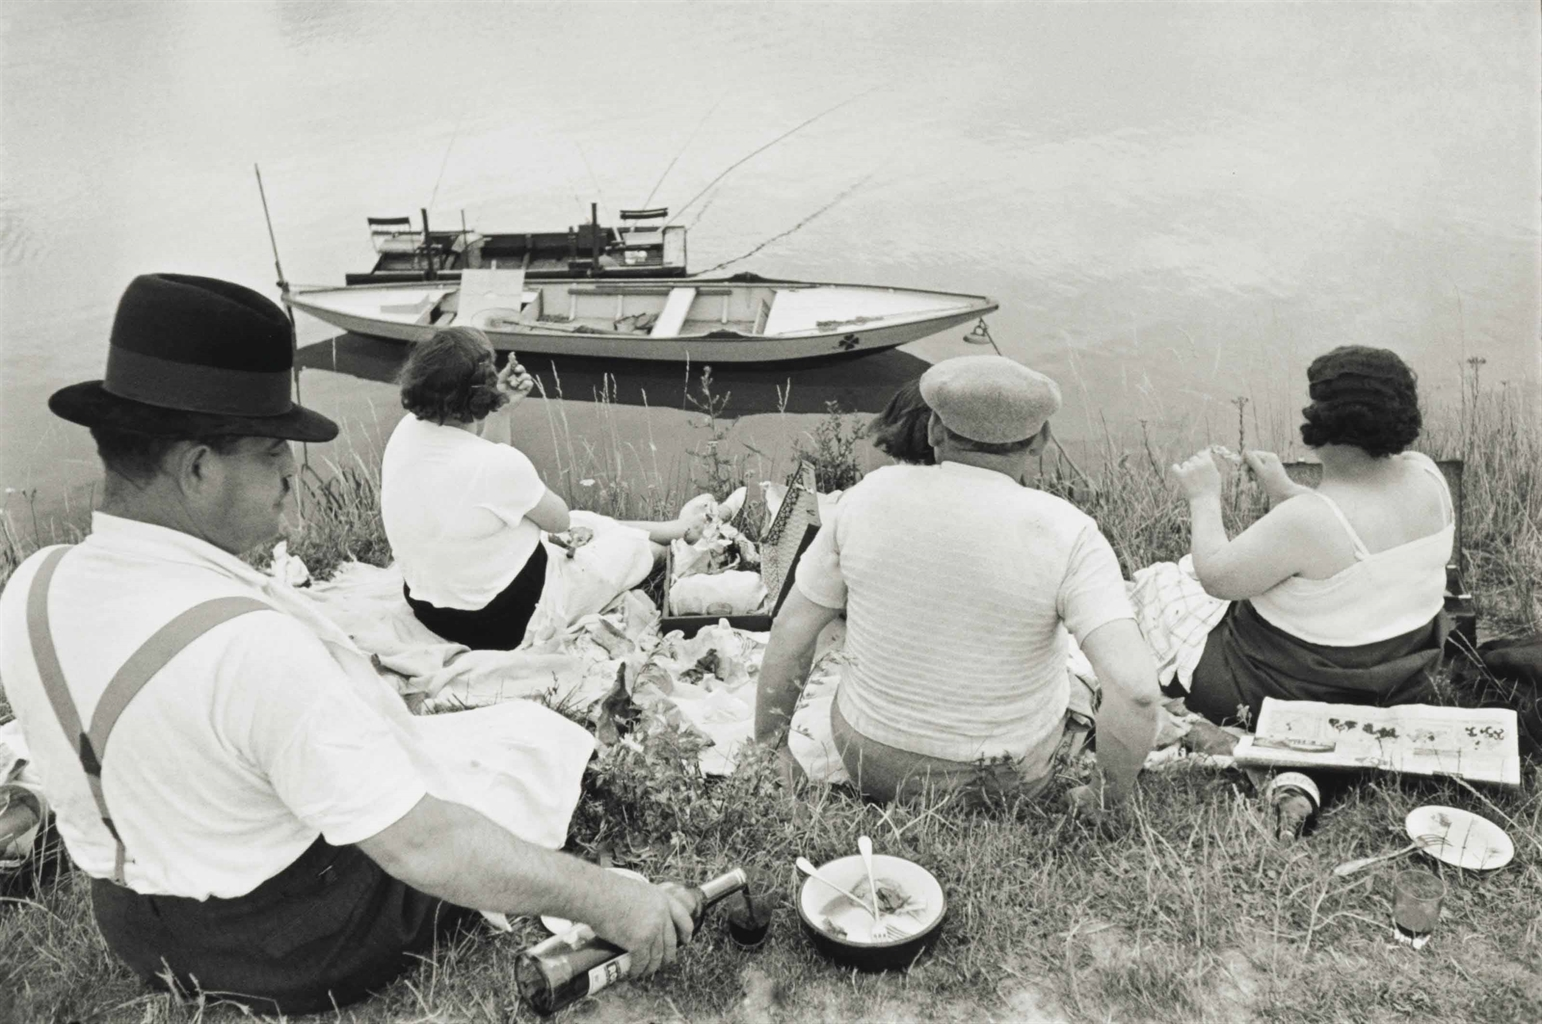 Henri Cartier-Bresson-On The Banks Of The Marne, France-1938